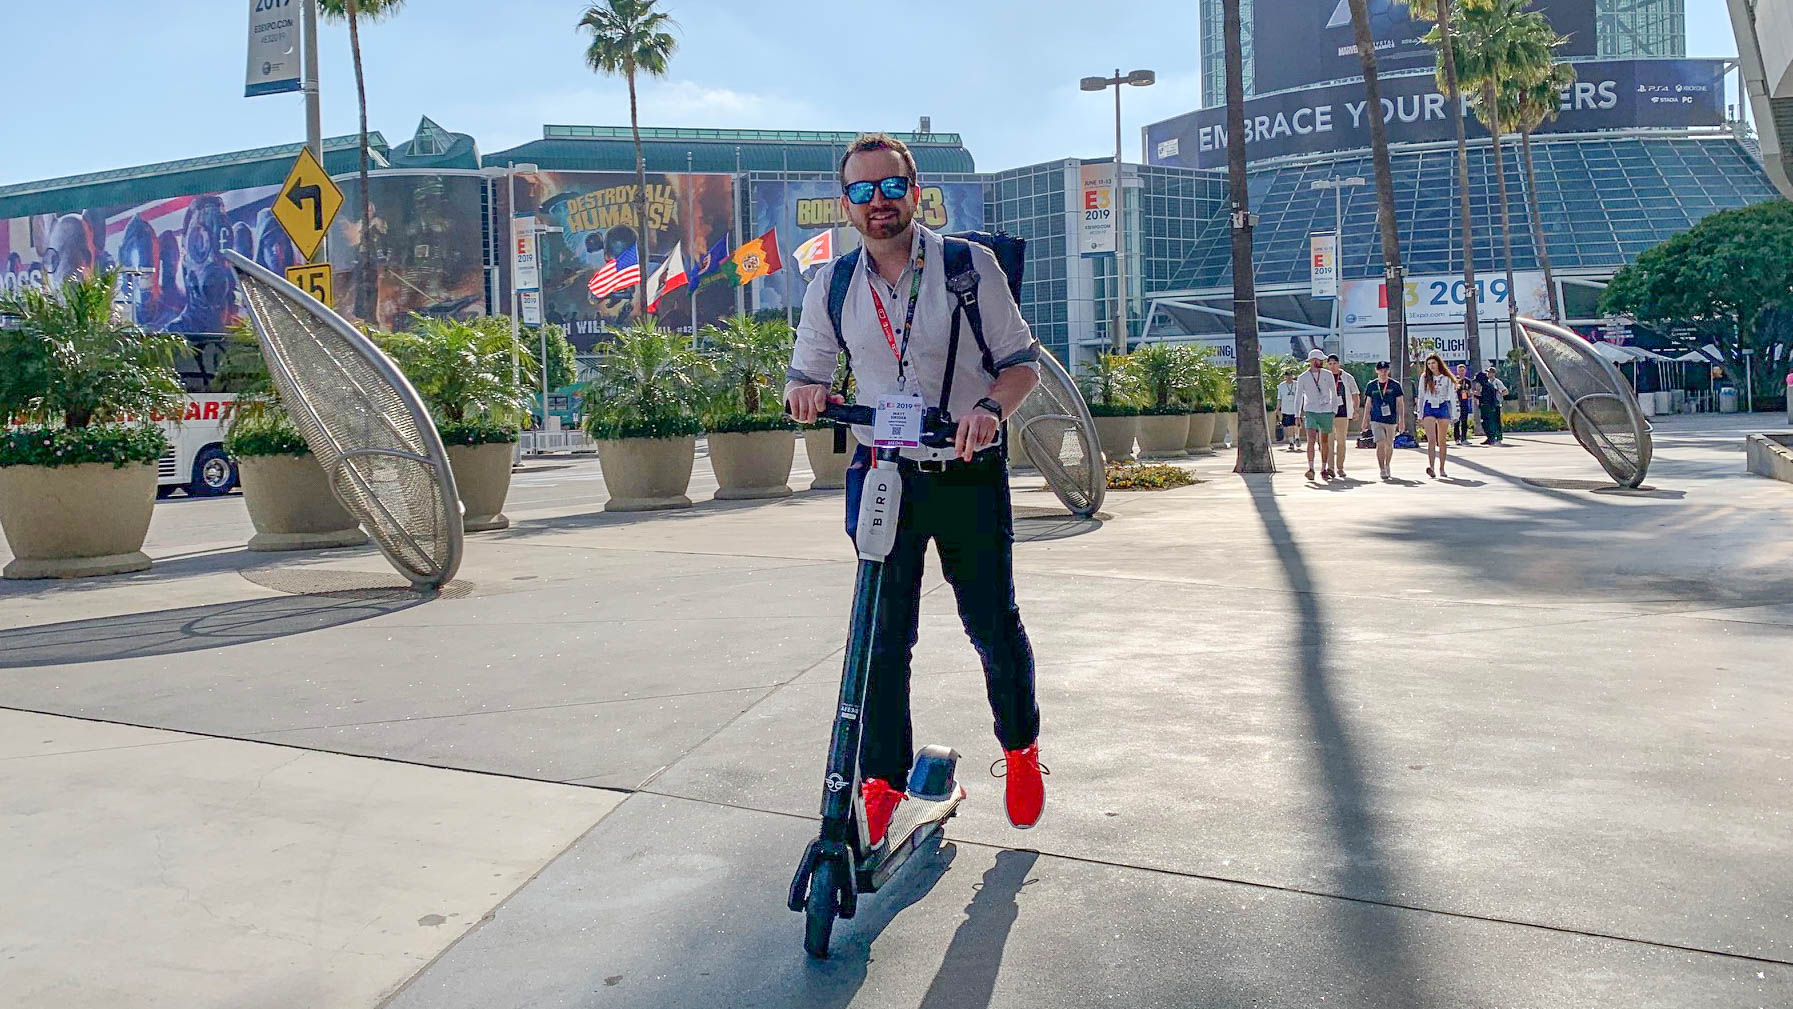 electric scooter outside of the Los Angeles Convention Center in June